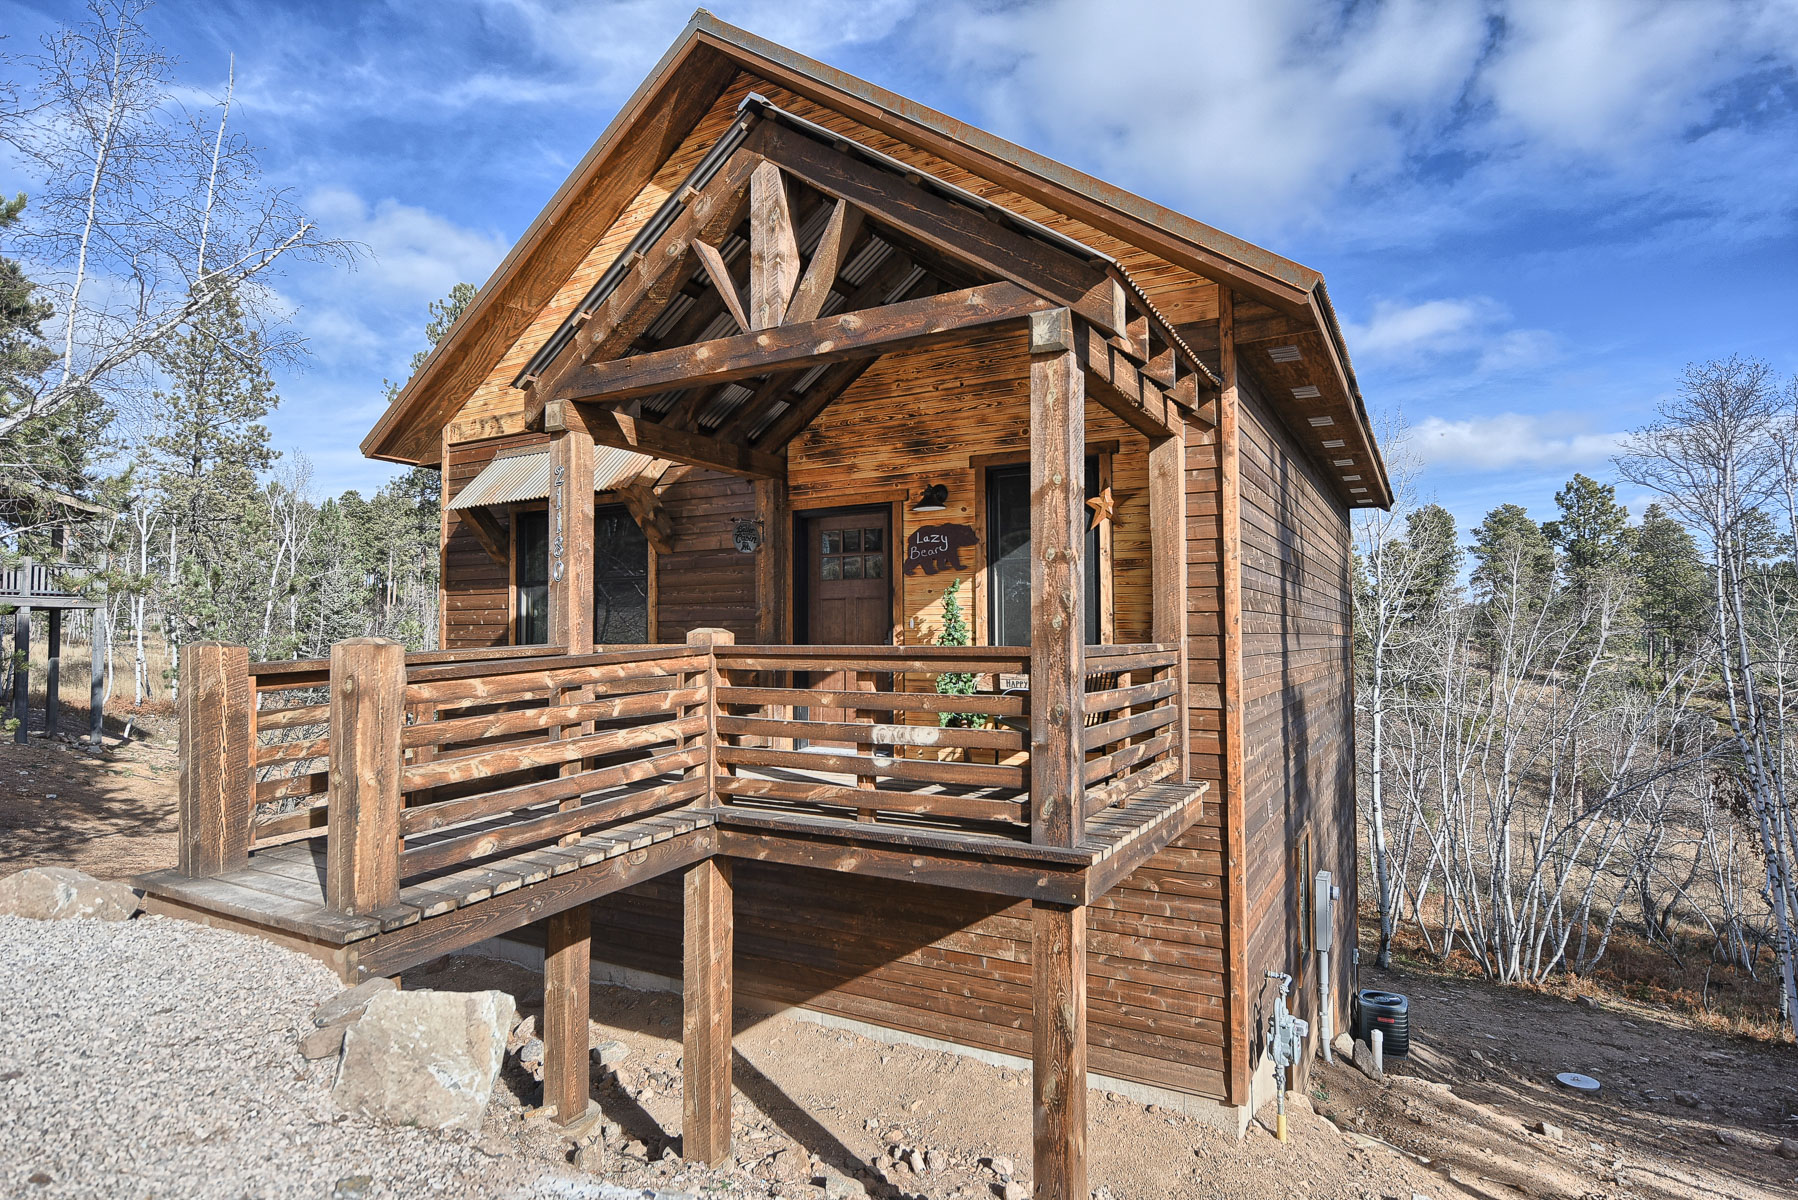 Lazy bear lodge black hills adventure lodging for Usmc big bear cabins